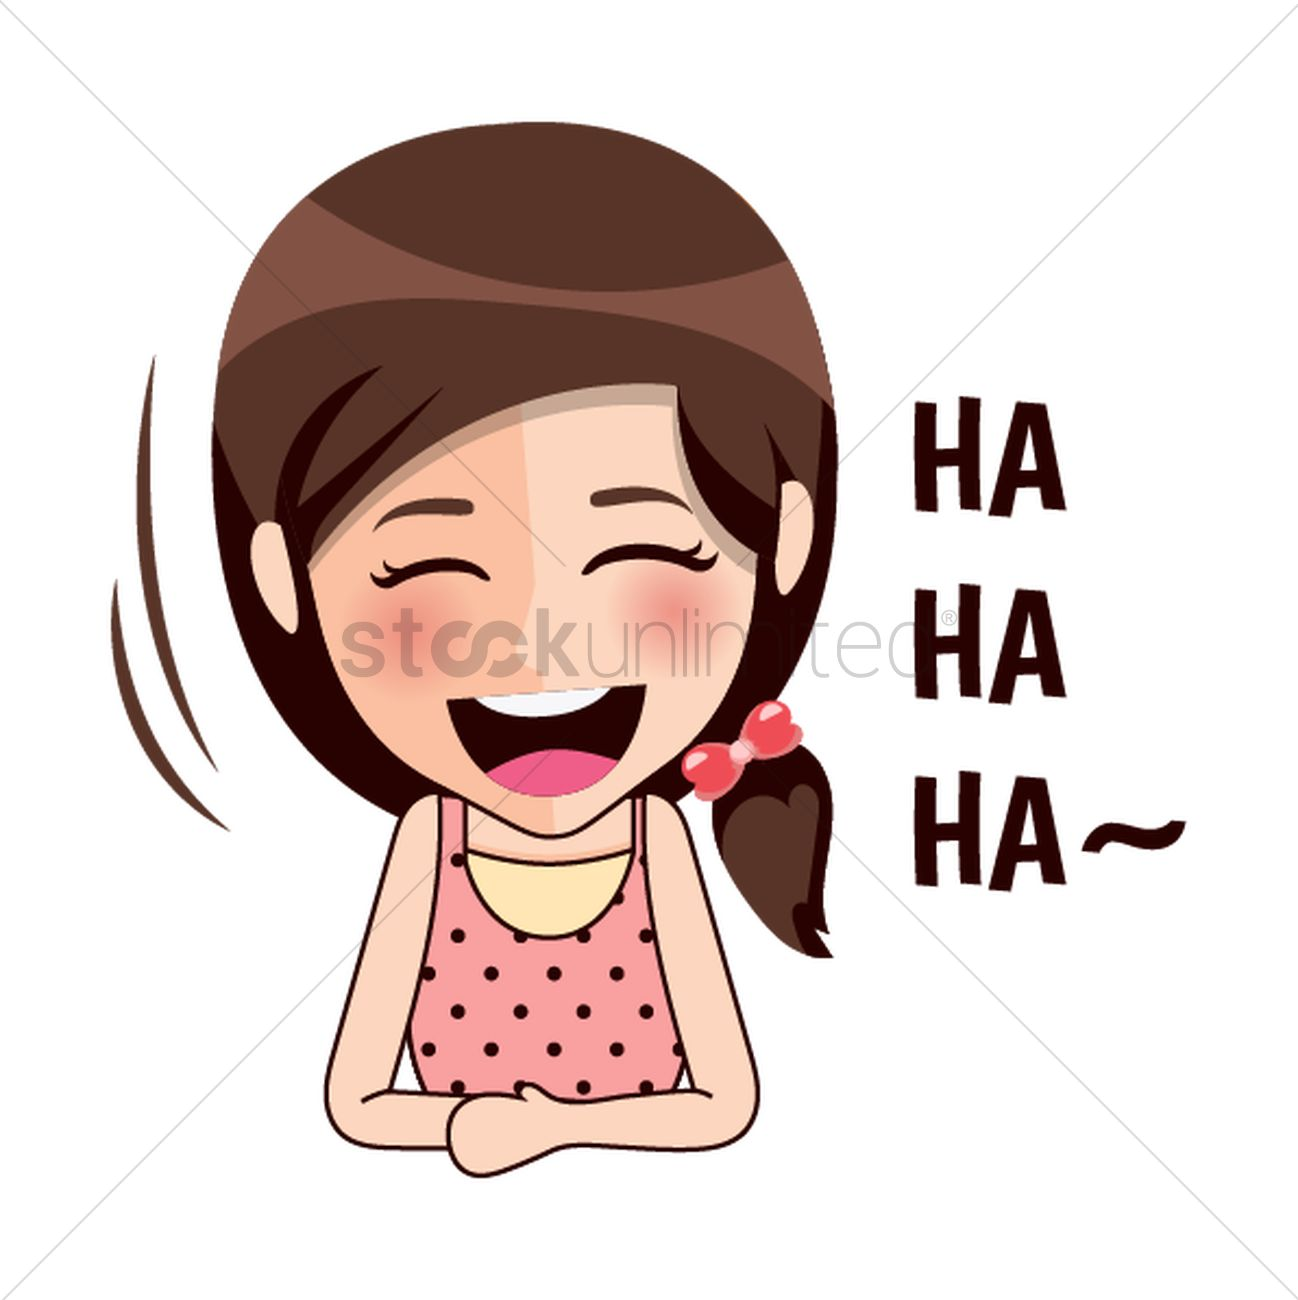 Cartoon girl laughing Vector Image - 1957234 | StockUnlimited